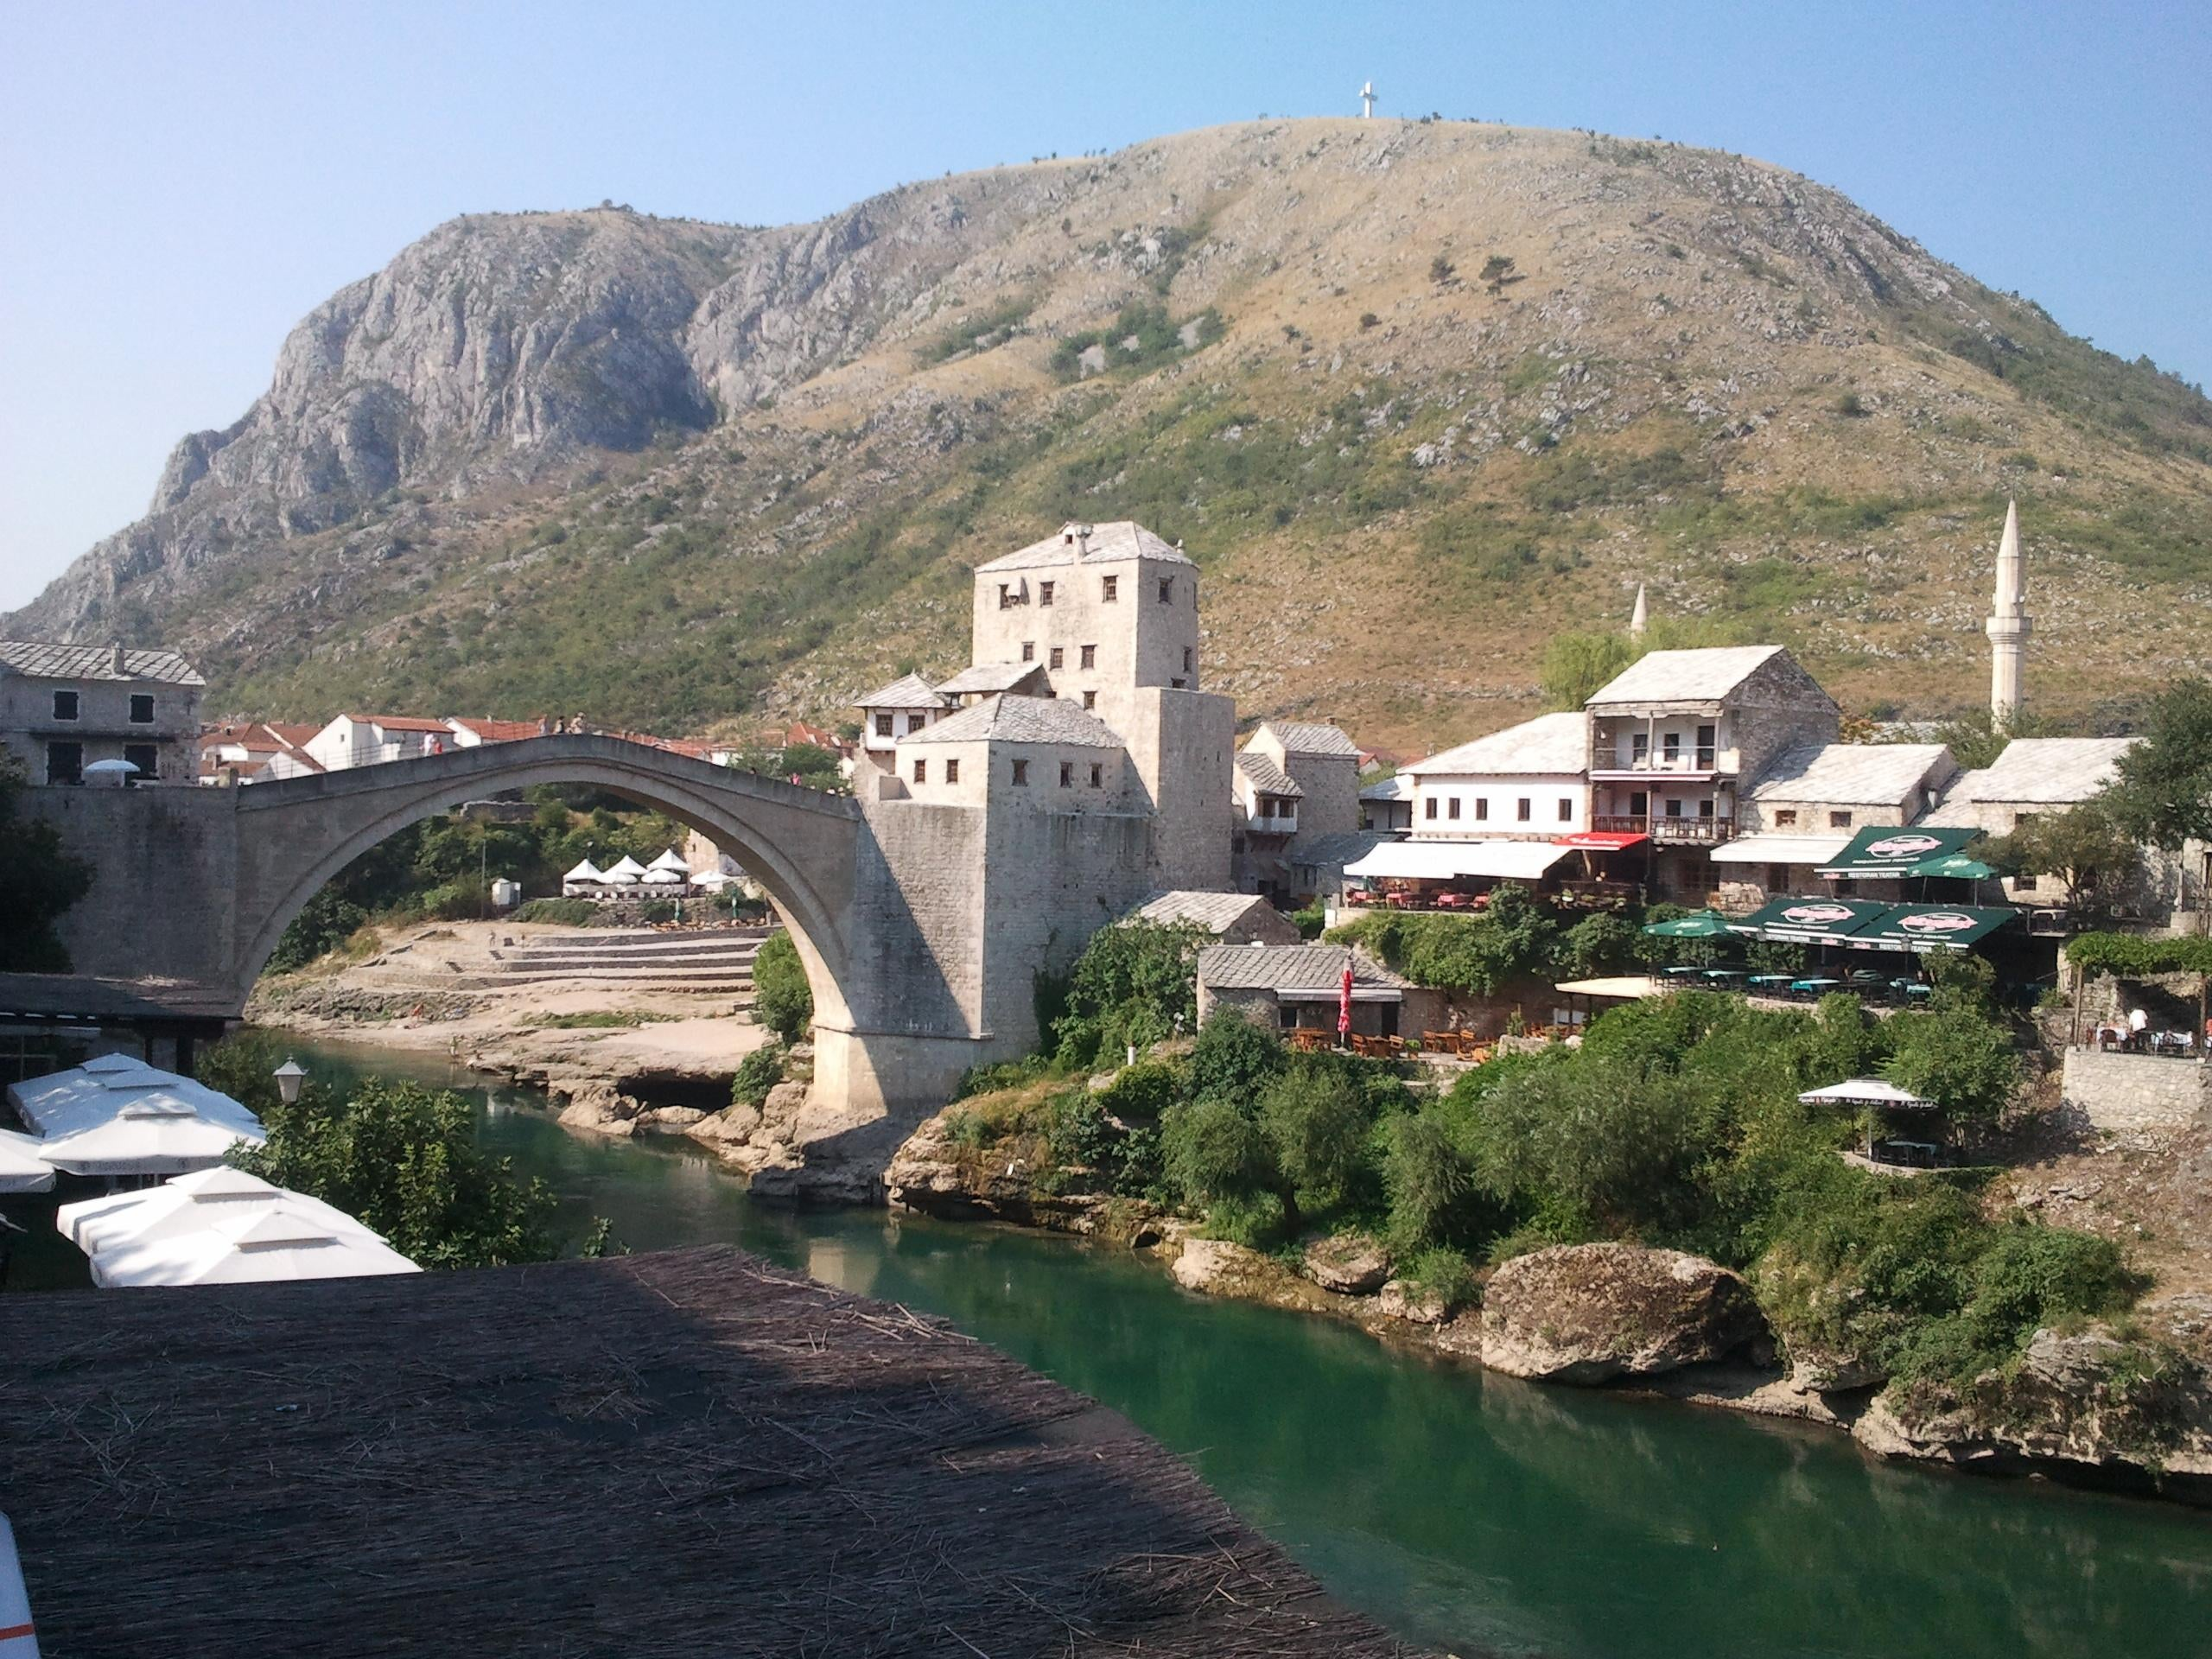 Fortification à Mostar